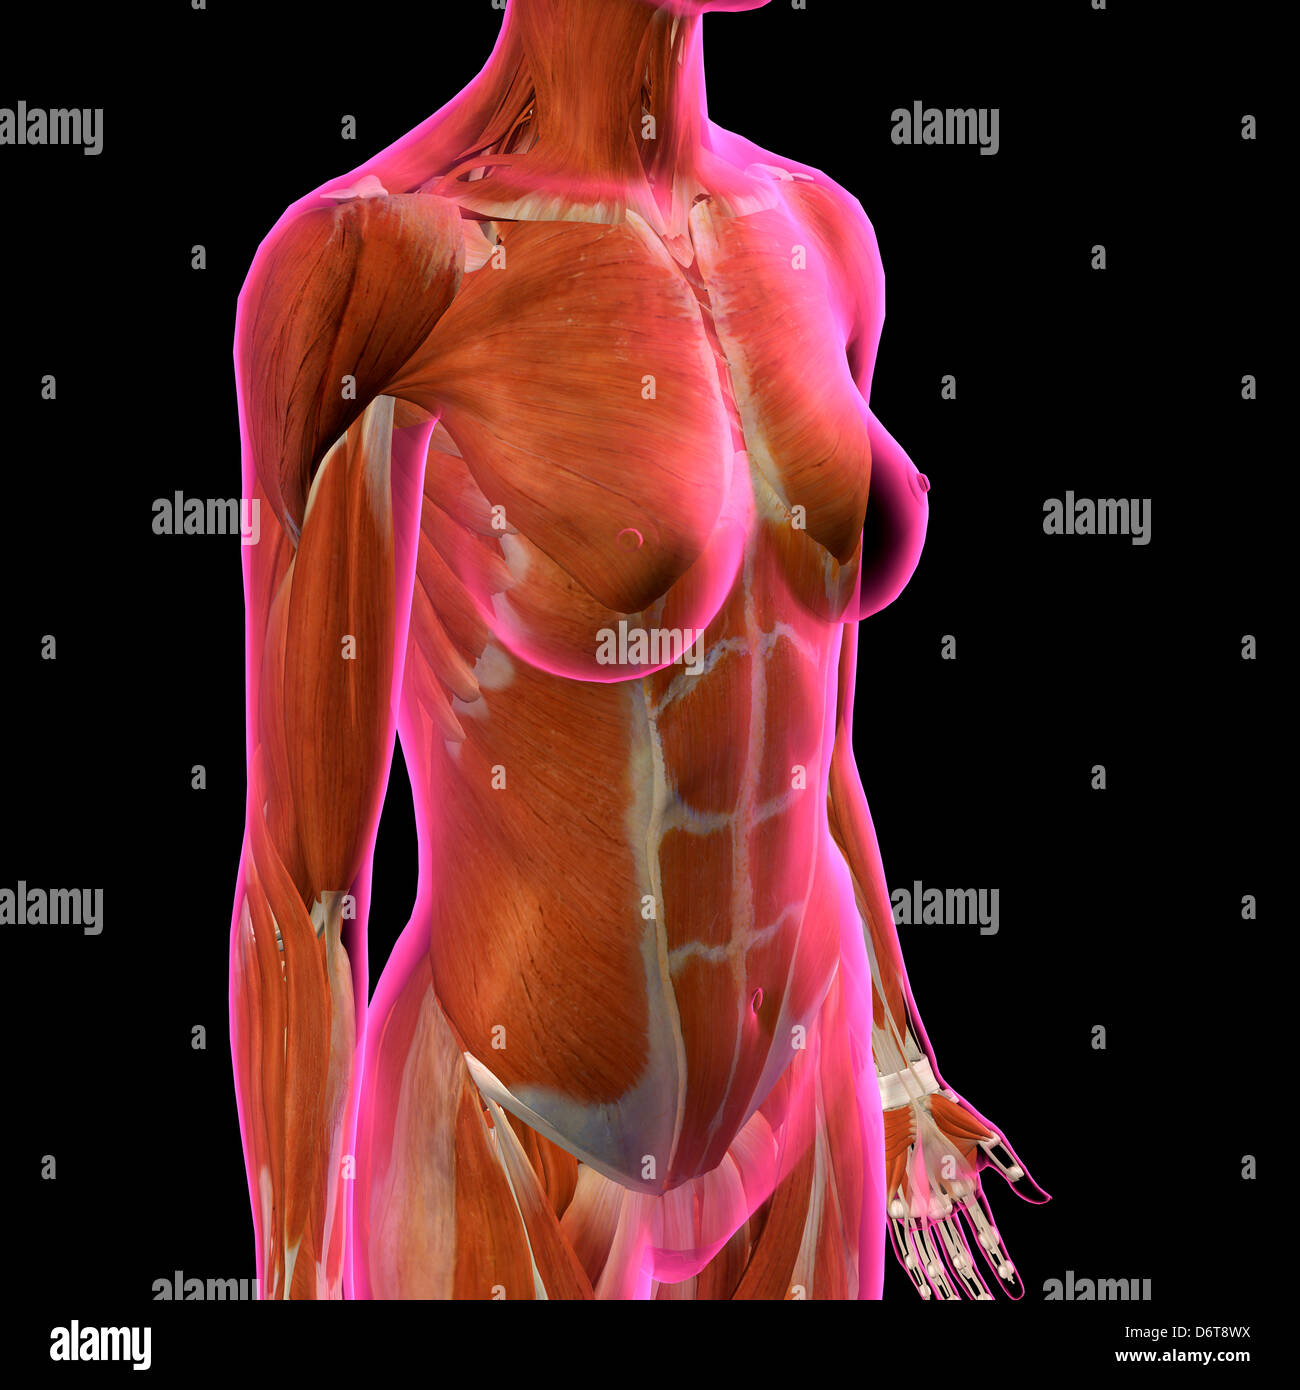 Female Chest Abdominal Muscles Anatomy In Pink X Ray Outline Full